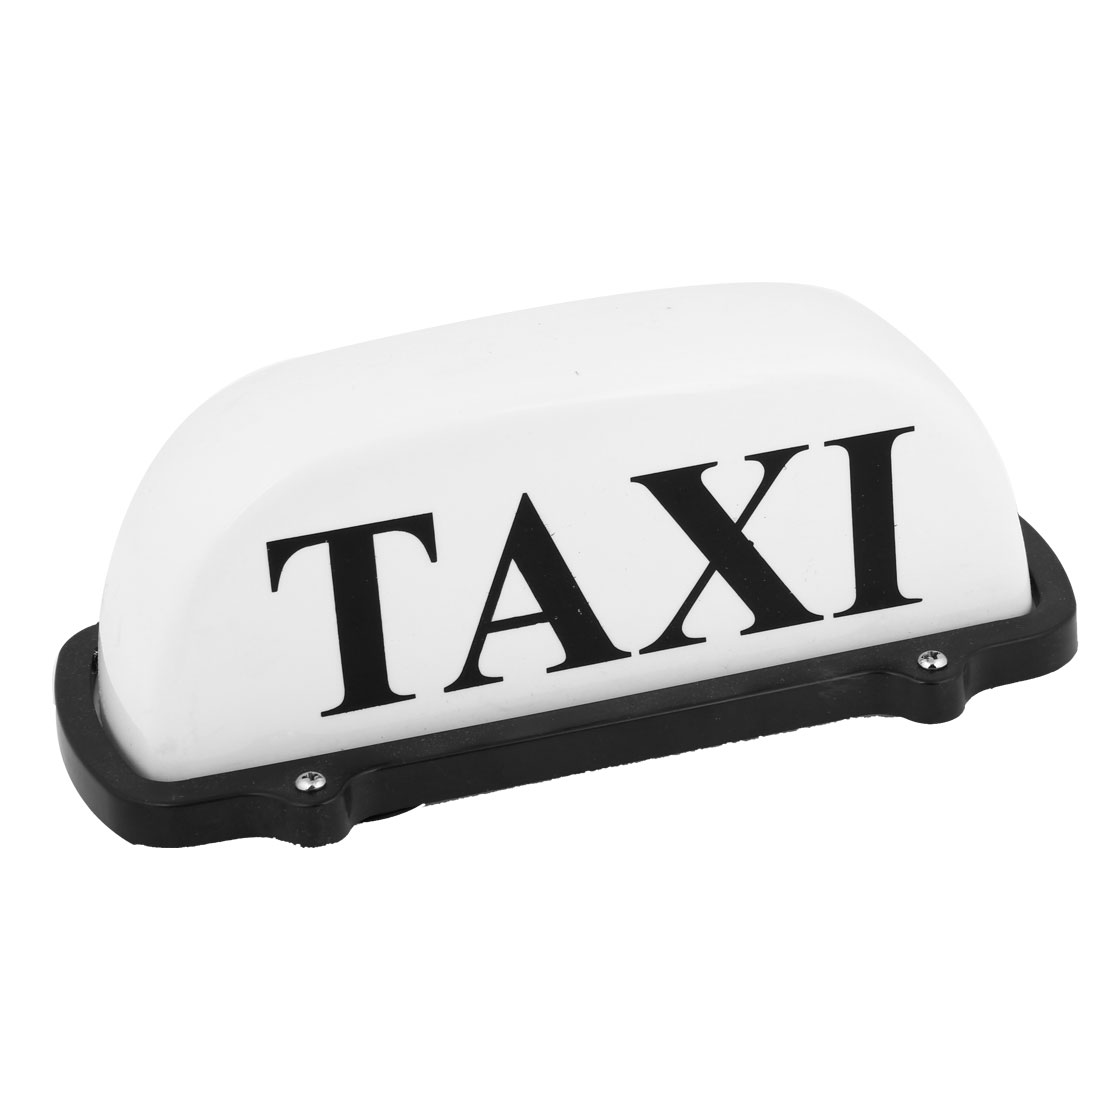 Plastic Shell Magnetic Base White Lights Taxi Cab Sign Lamp DC 12V